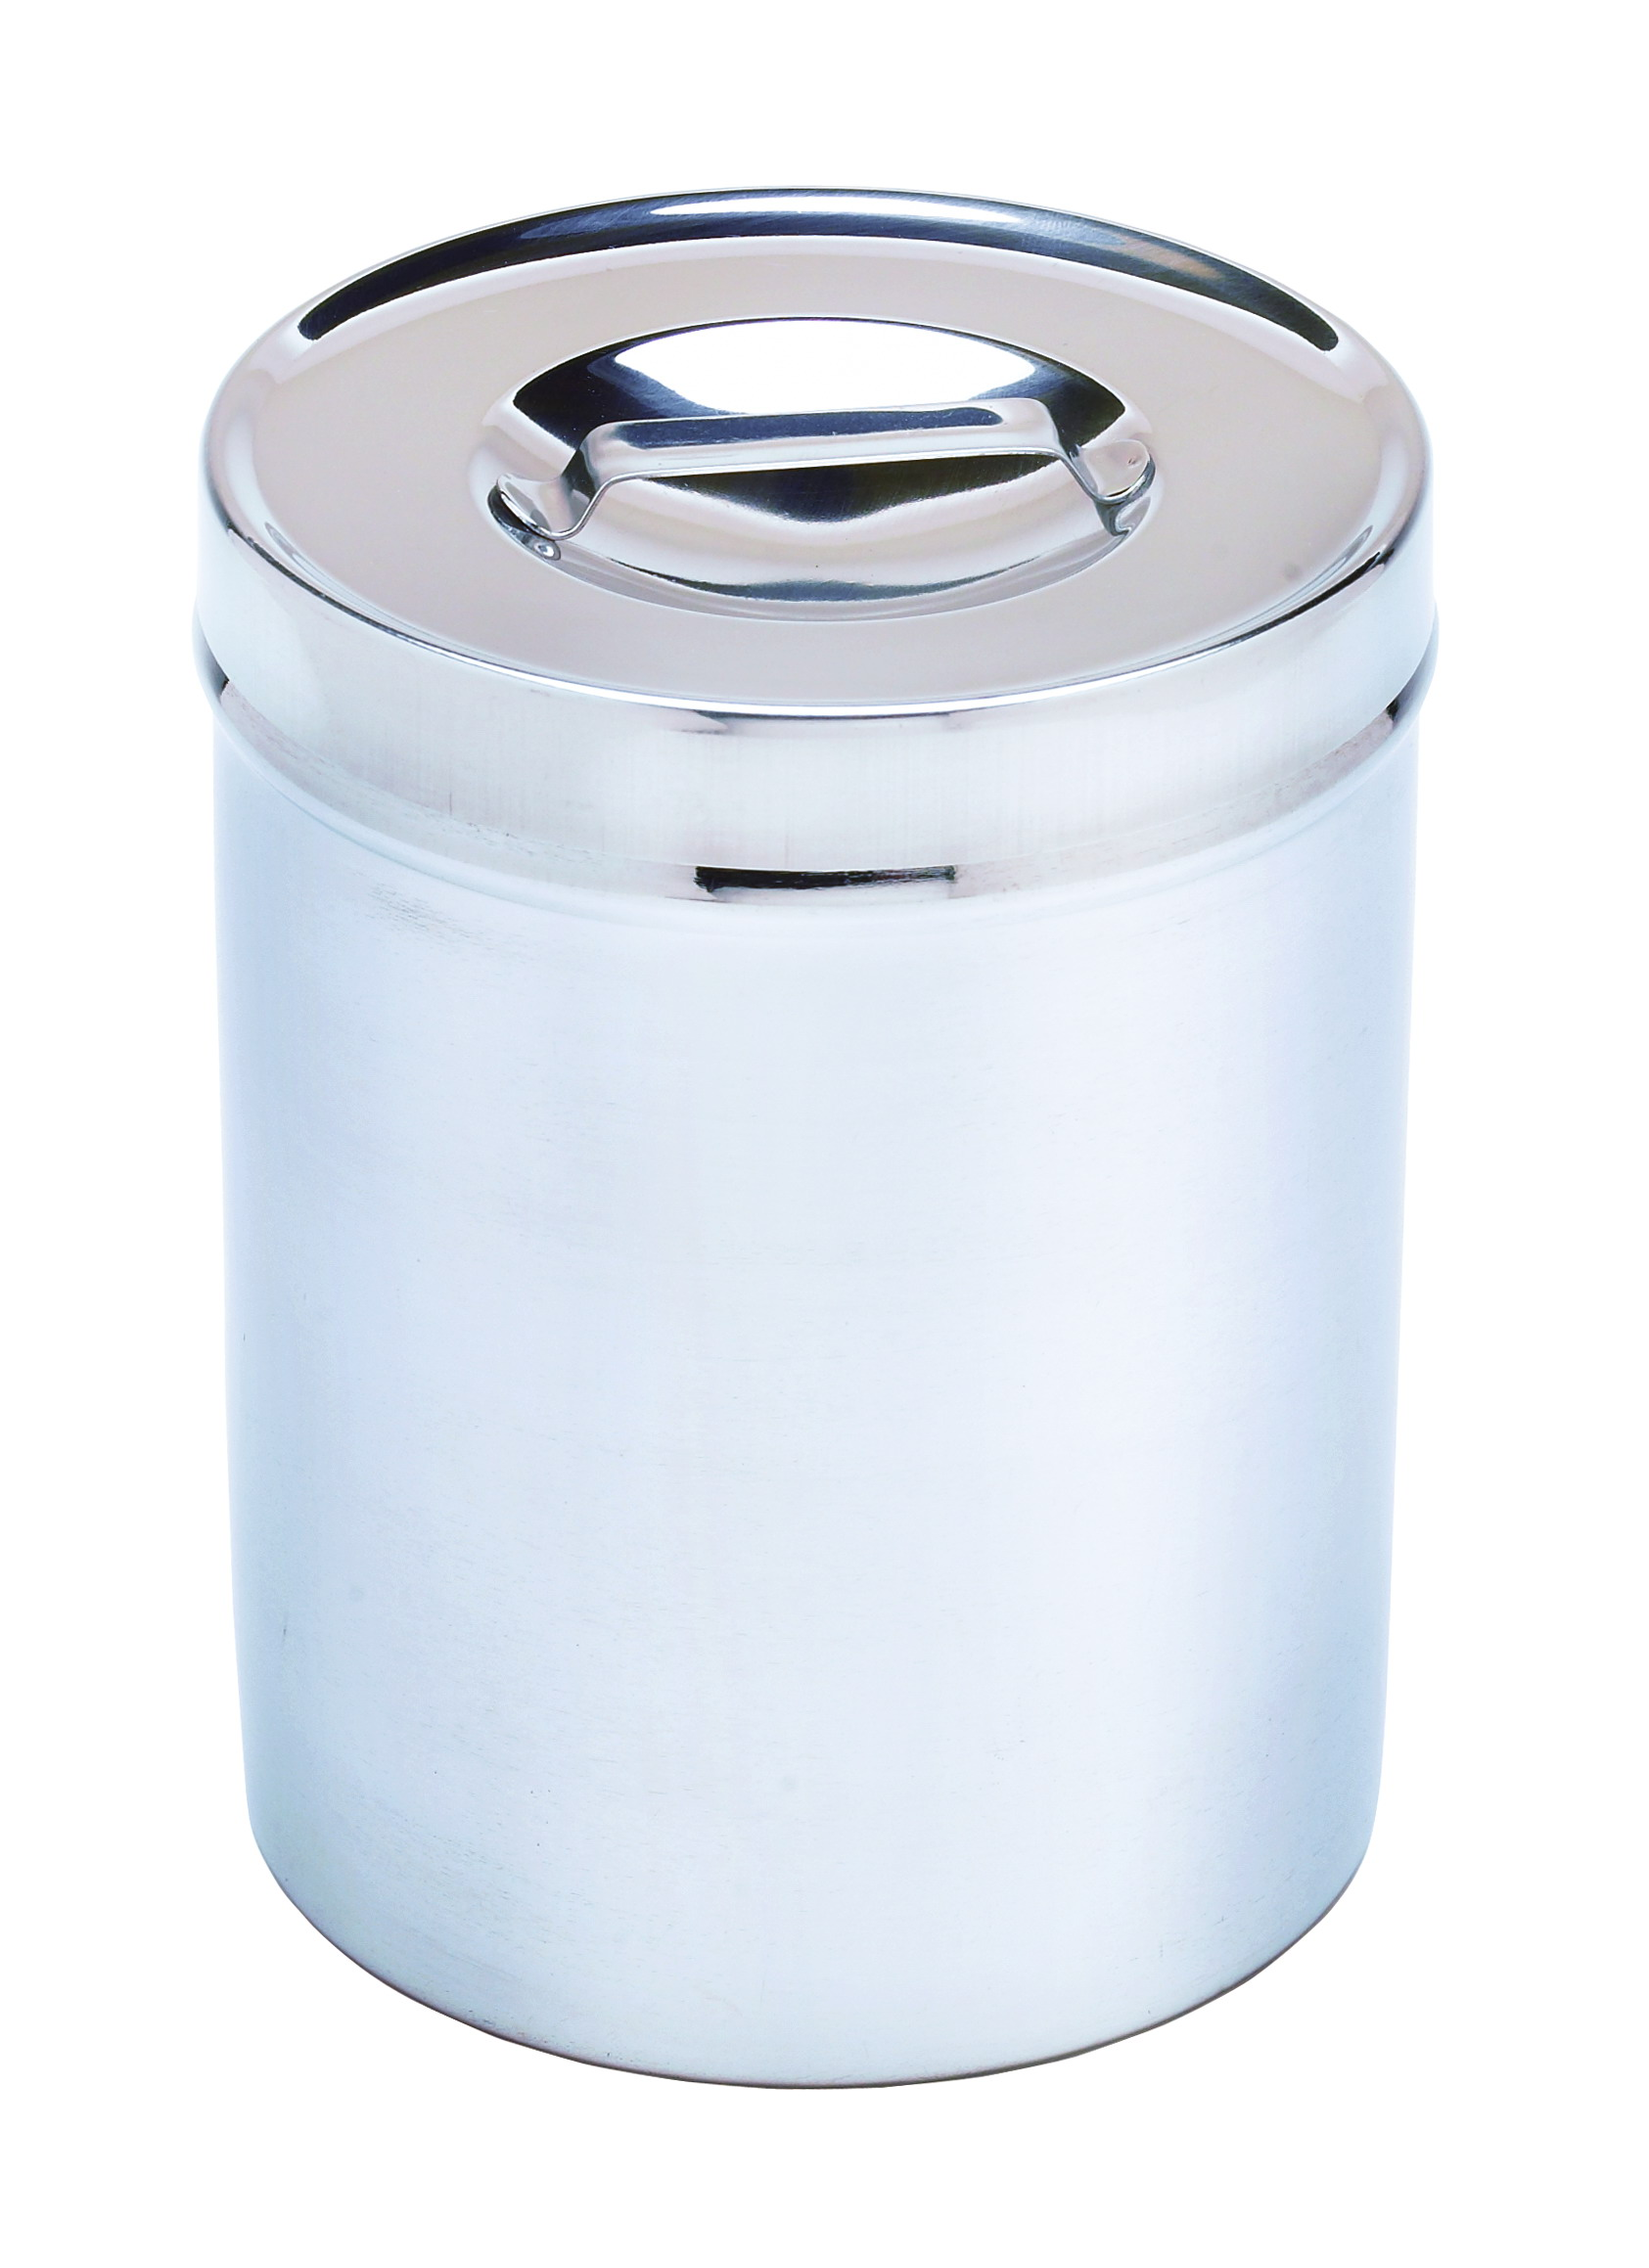 dressing-jar-cvr-2qt-5-x-6-3-8-2-qt-3-954-miltex.jpg